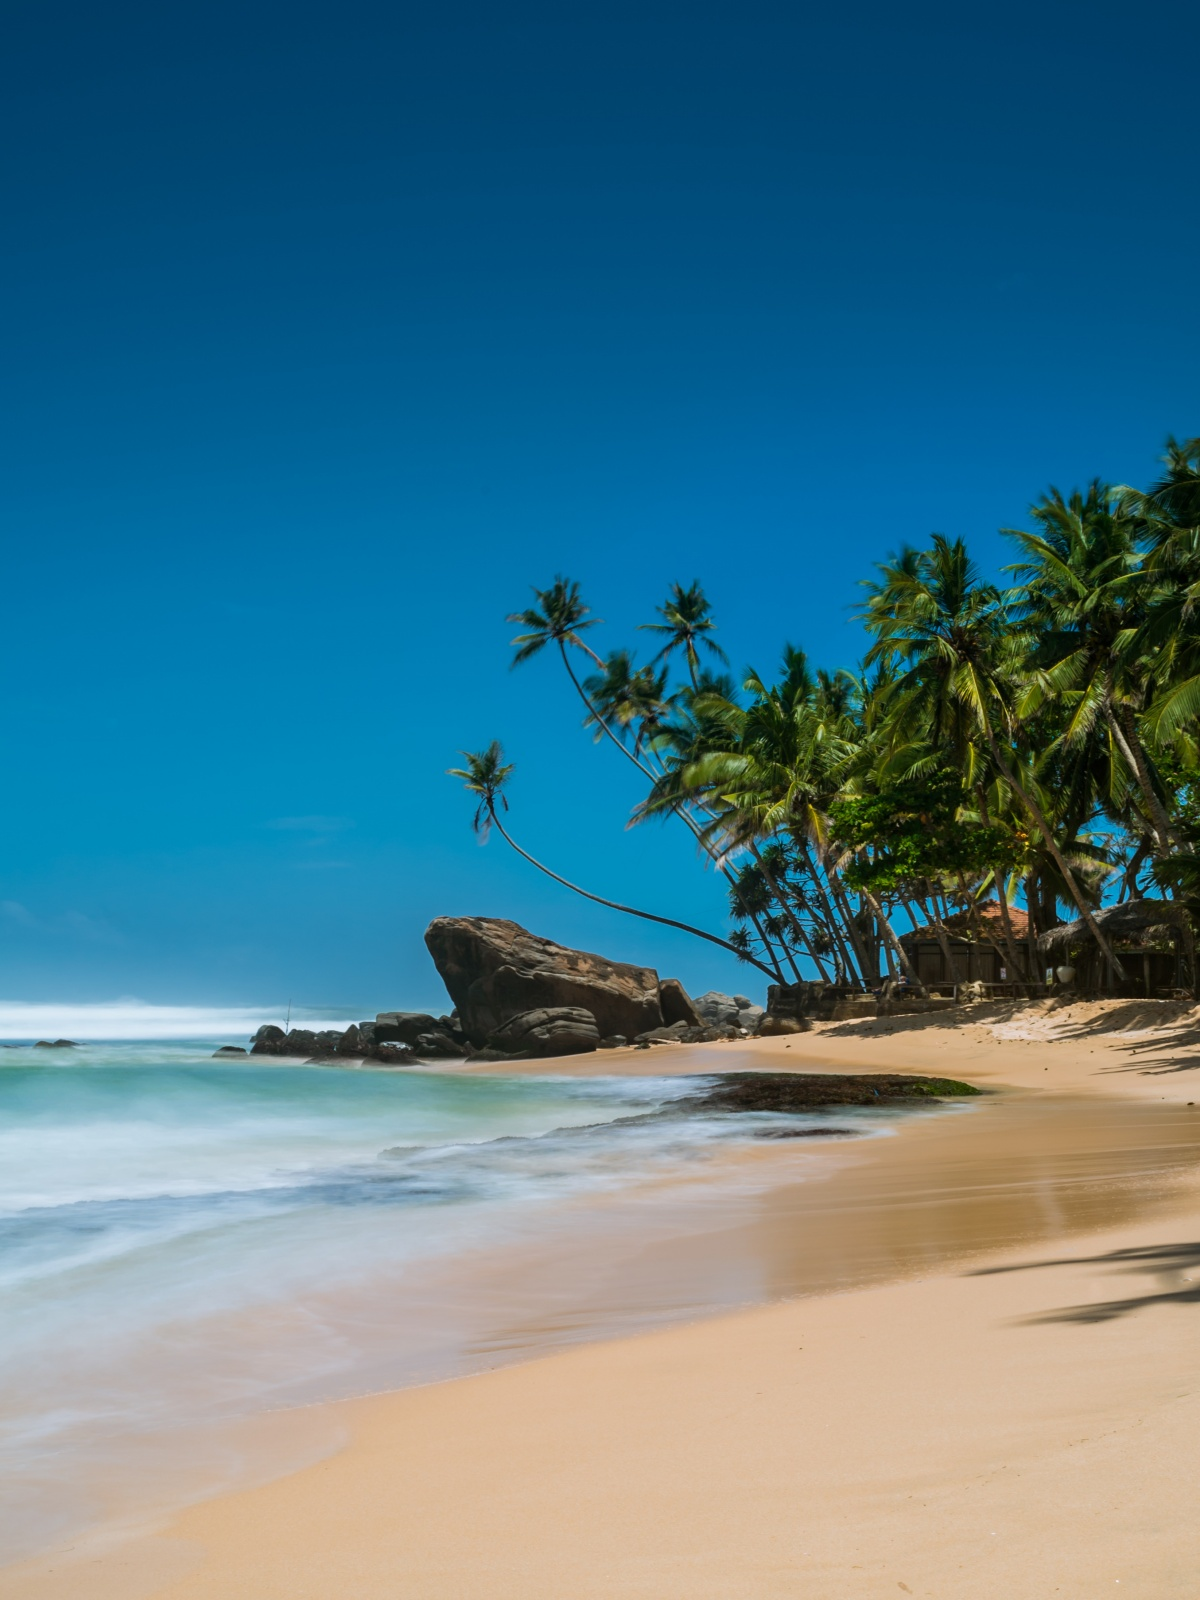 Long exposure photo of beautiful beach paradise in Mihiripenna, Sri Lanka.